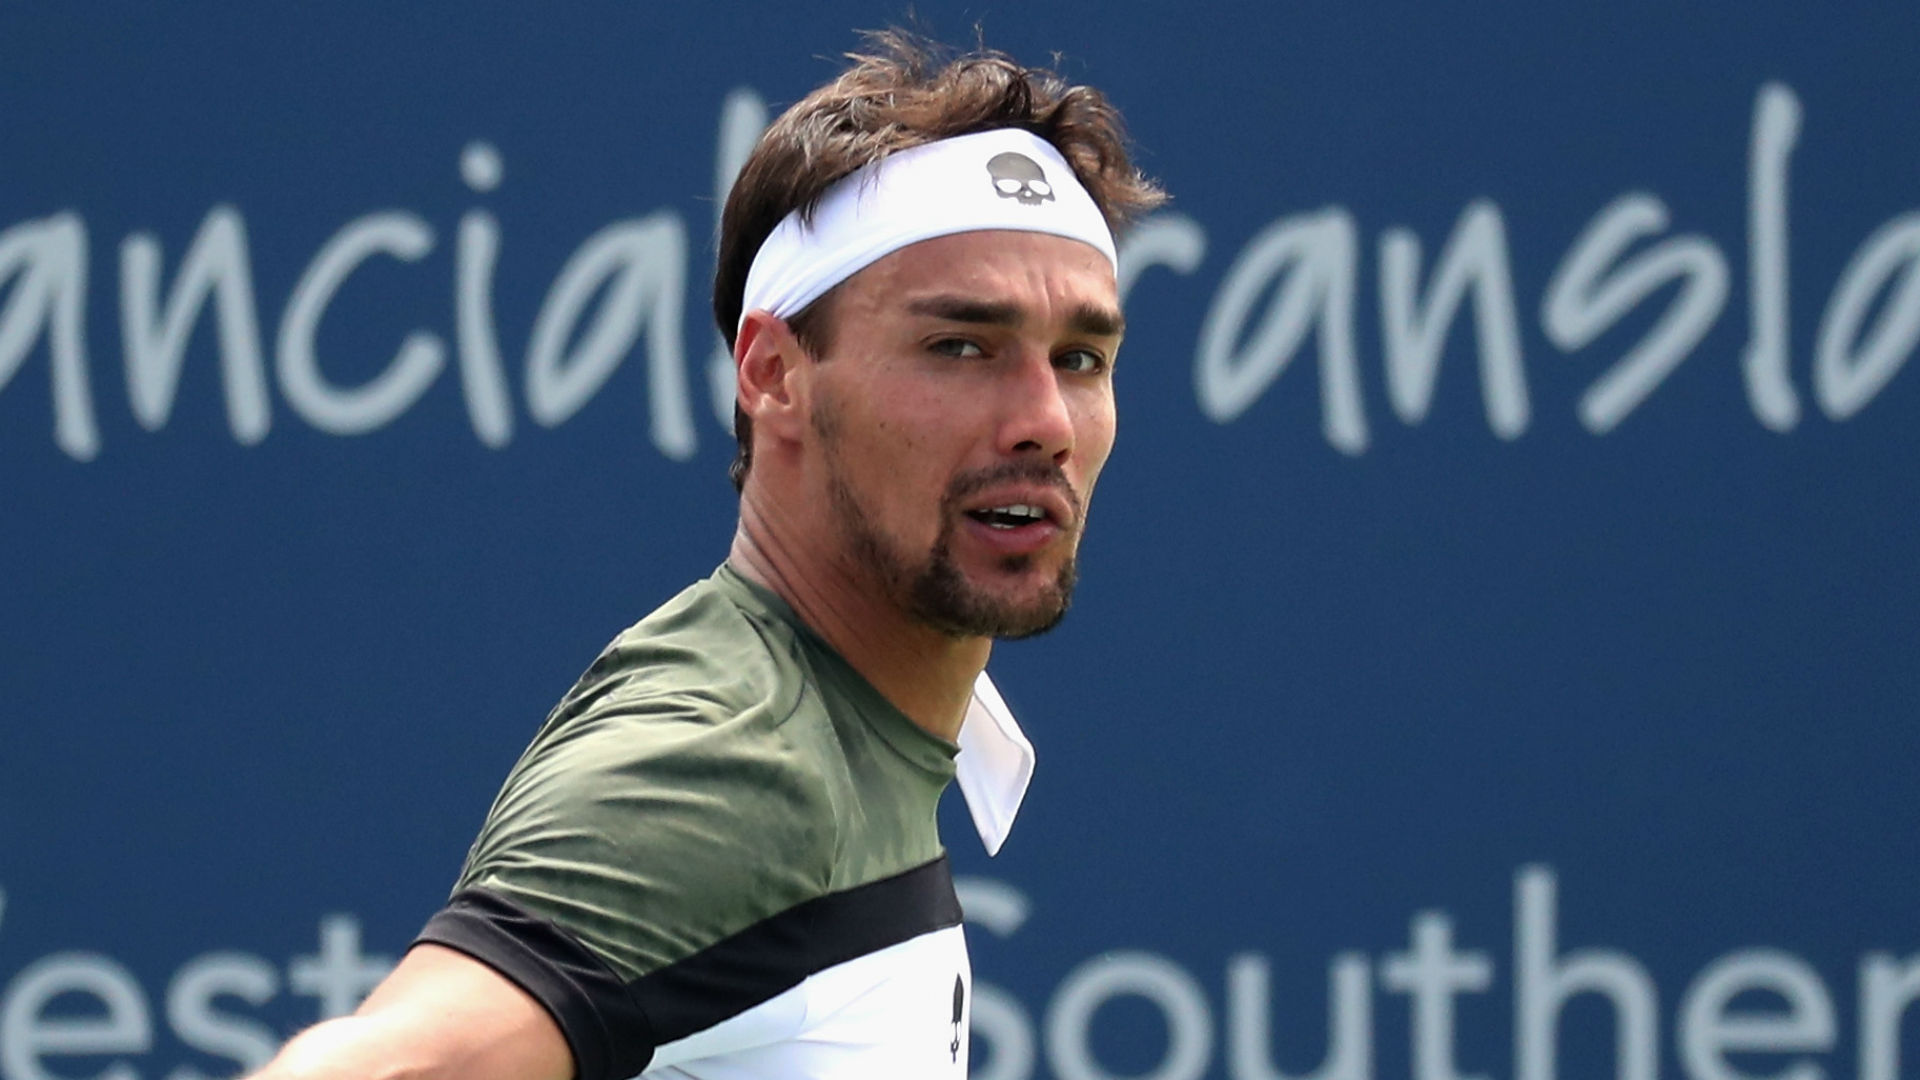 Fabio Fognini kicked out of US Open for abusing umpire